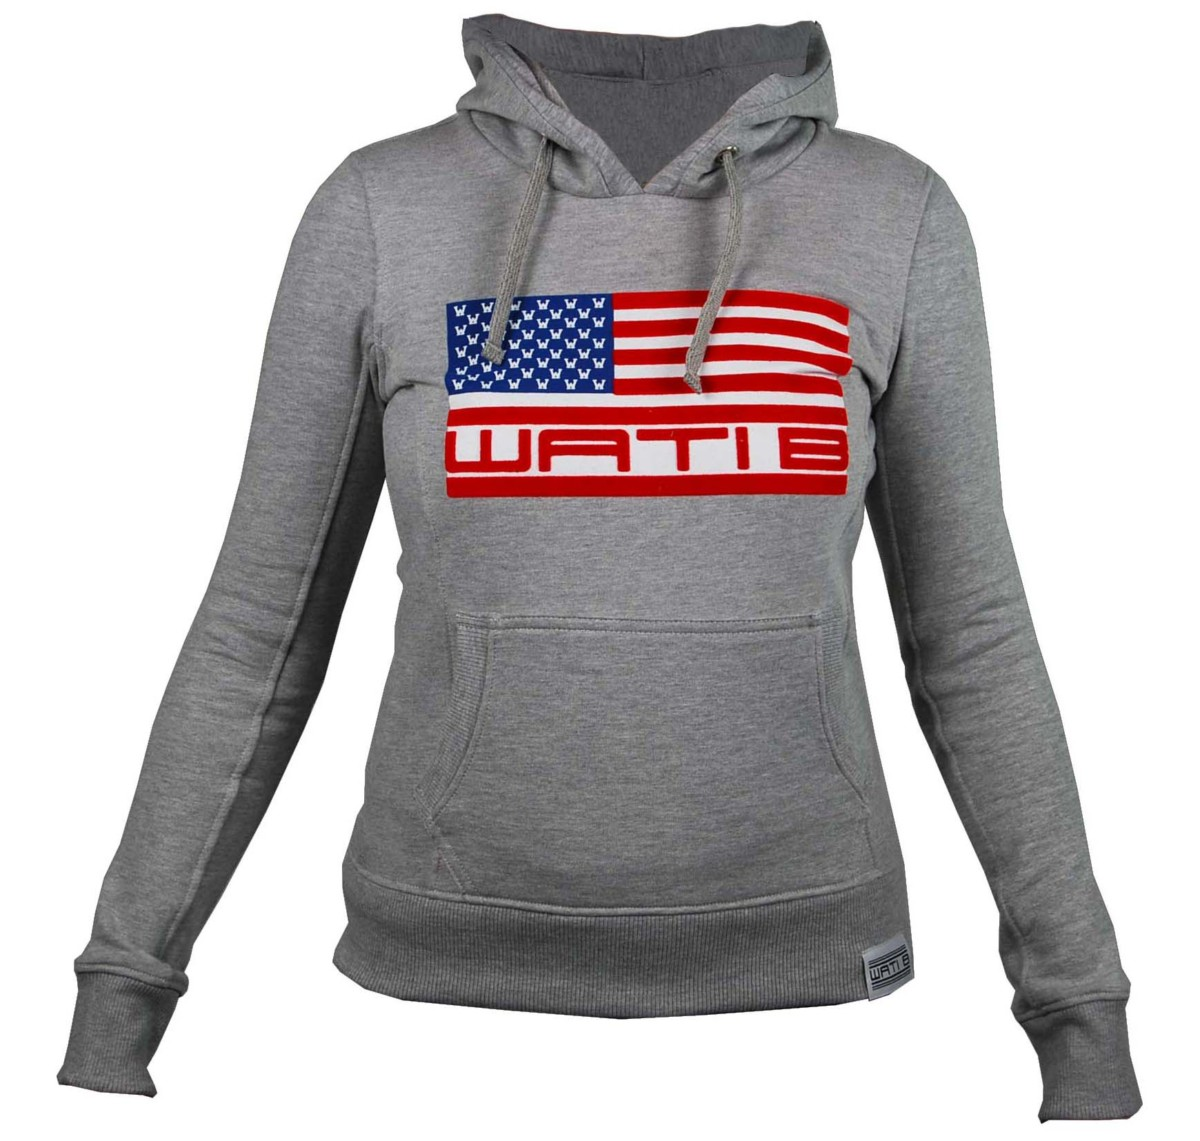 Sweat capuche femme page 2 TopiWall